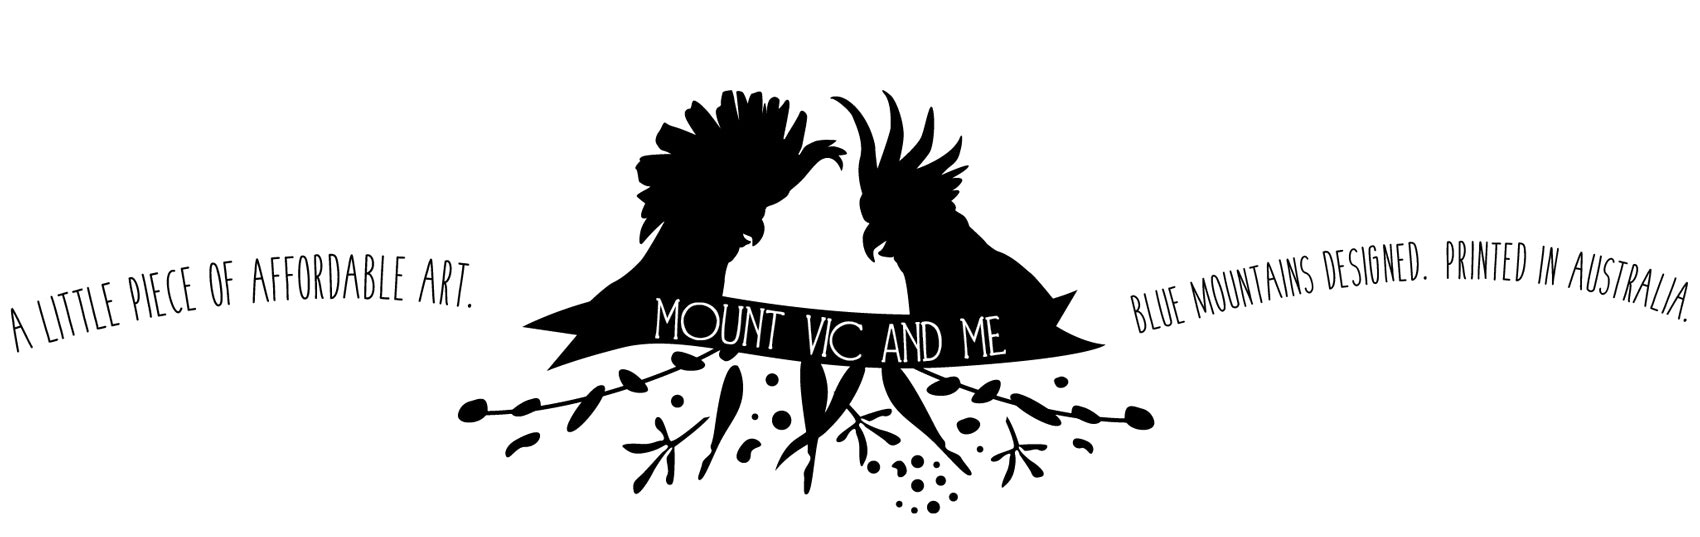 Mount Vic and Me Australian Gifts online